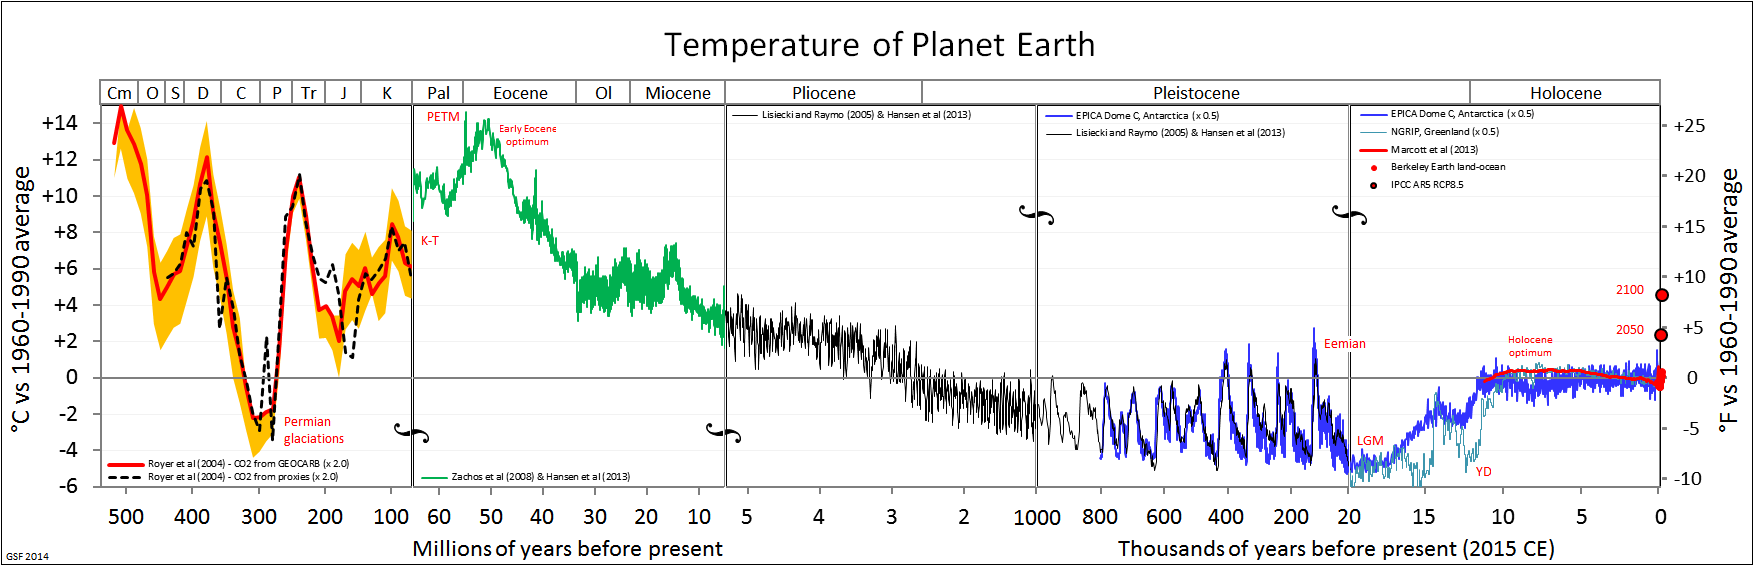 Temperature of the earth in the last 500 millions of years